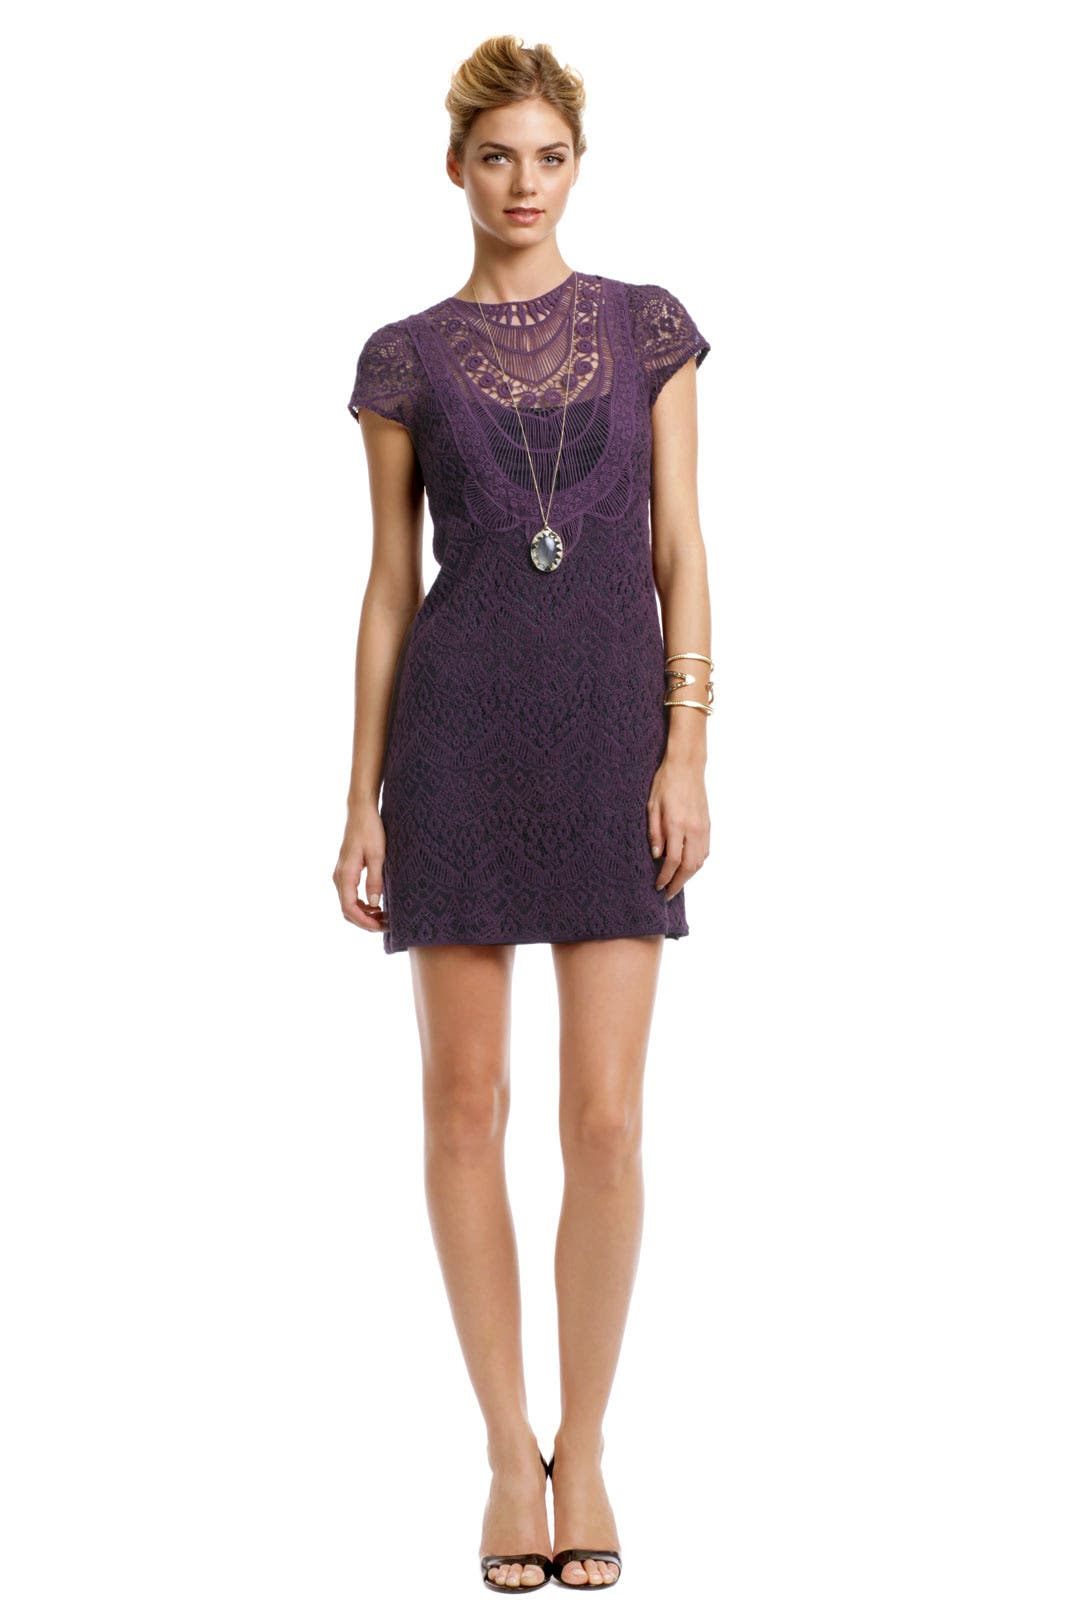 Rustic Plum Lace Dress by Nanette Lepore